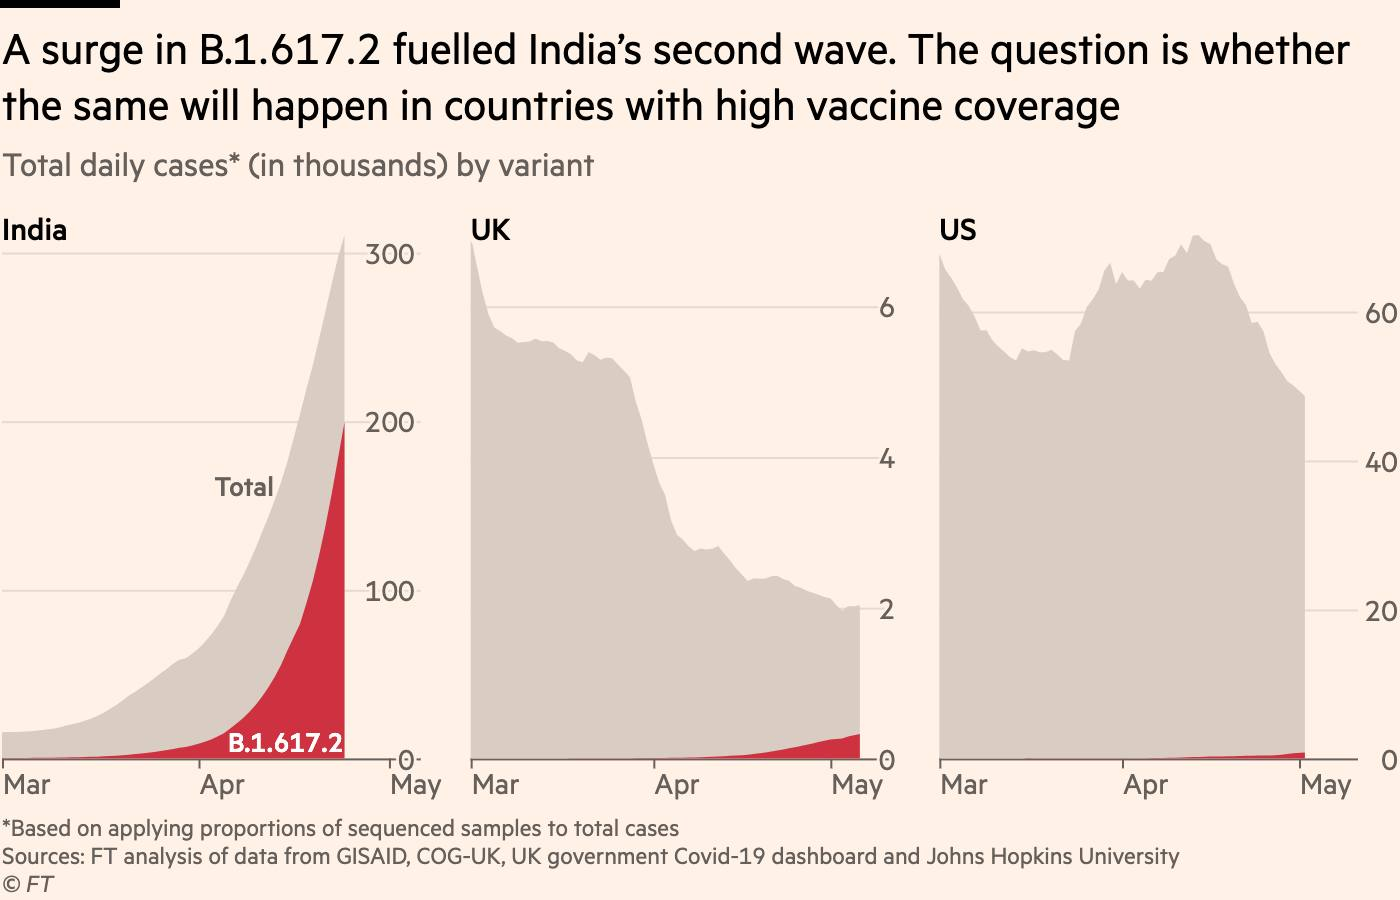 Chart showing that a surge in B.1.617.2 fuelled India's second wave. The question is whether the same will happen in countries with high vaccine coverage